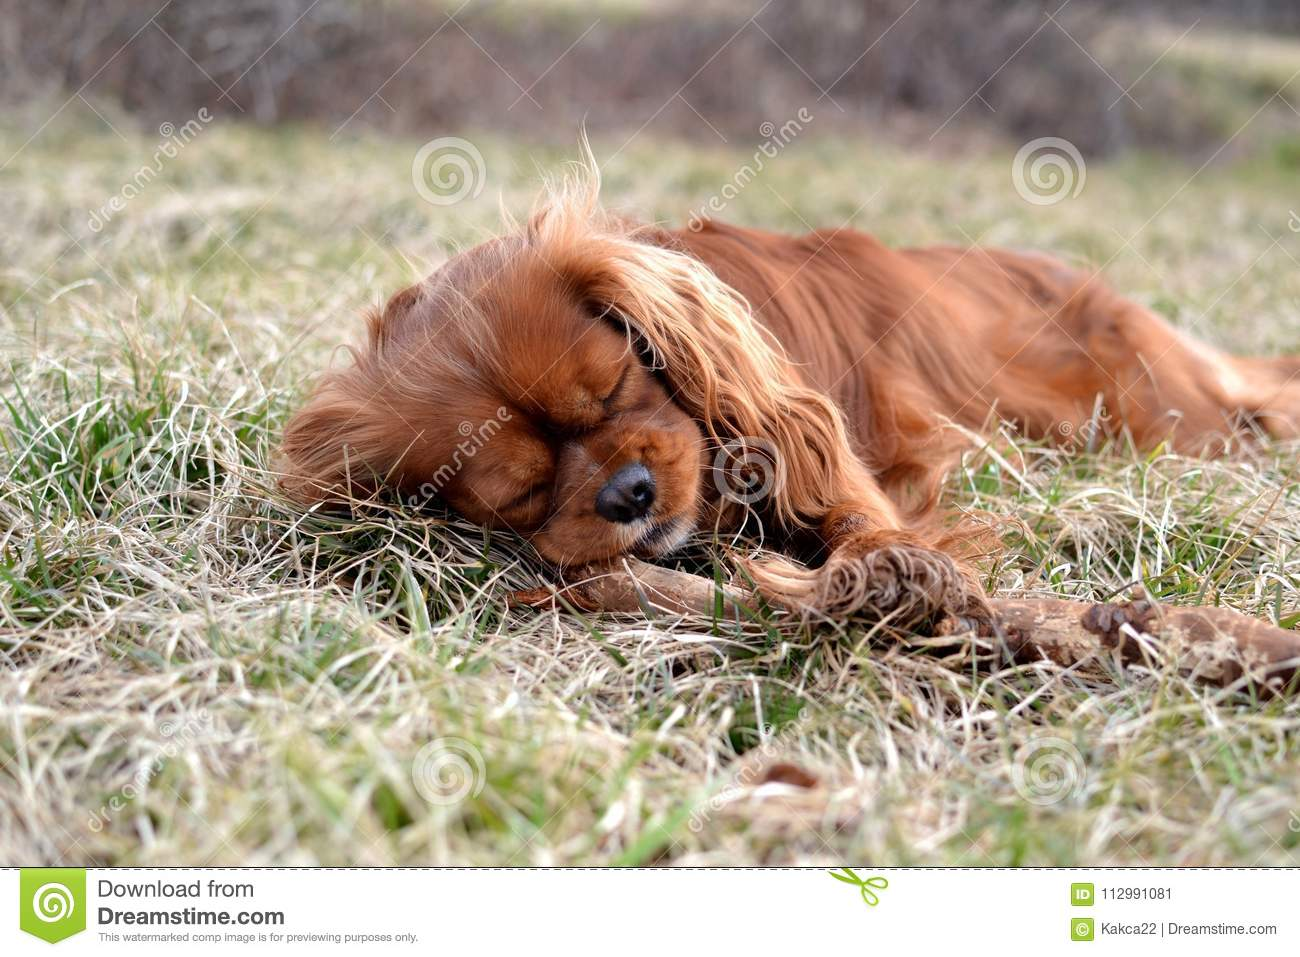 Cute Ruby Cavalier King Charles Spaniel Puppy Sleeping On Meadow Stock Image Image Of Ruby Field 112991081